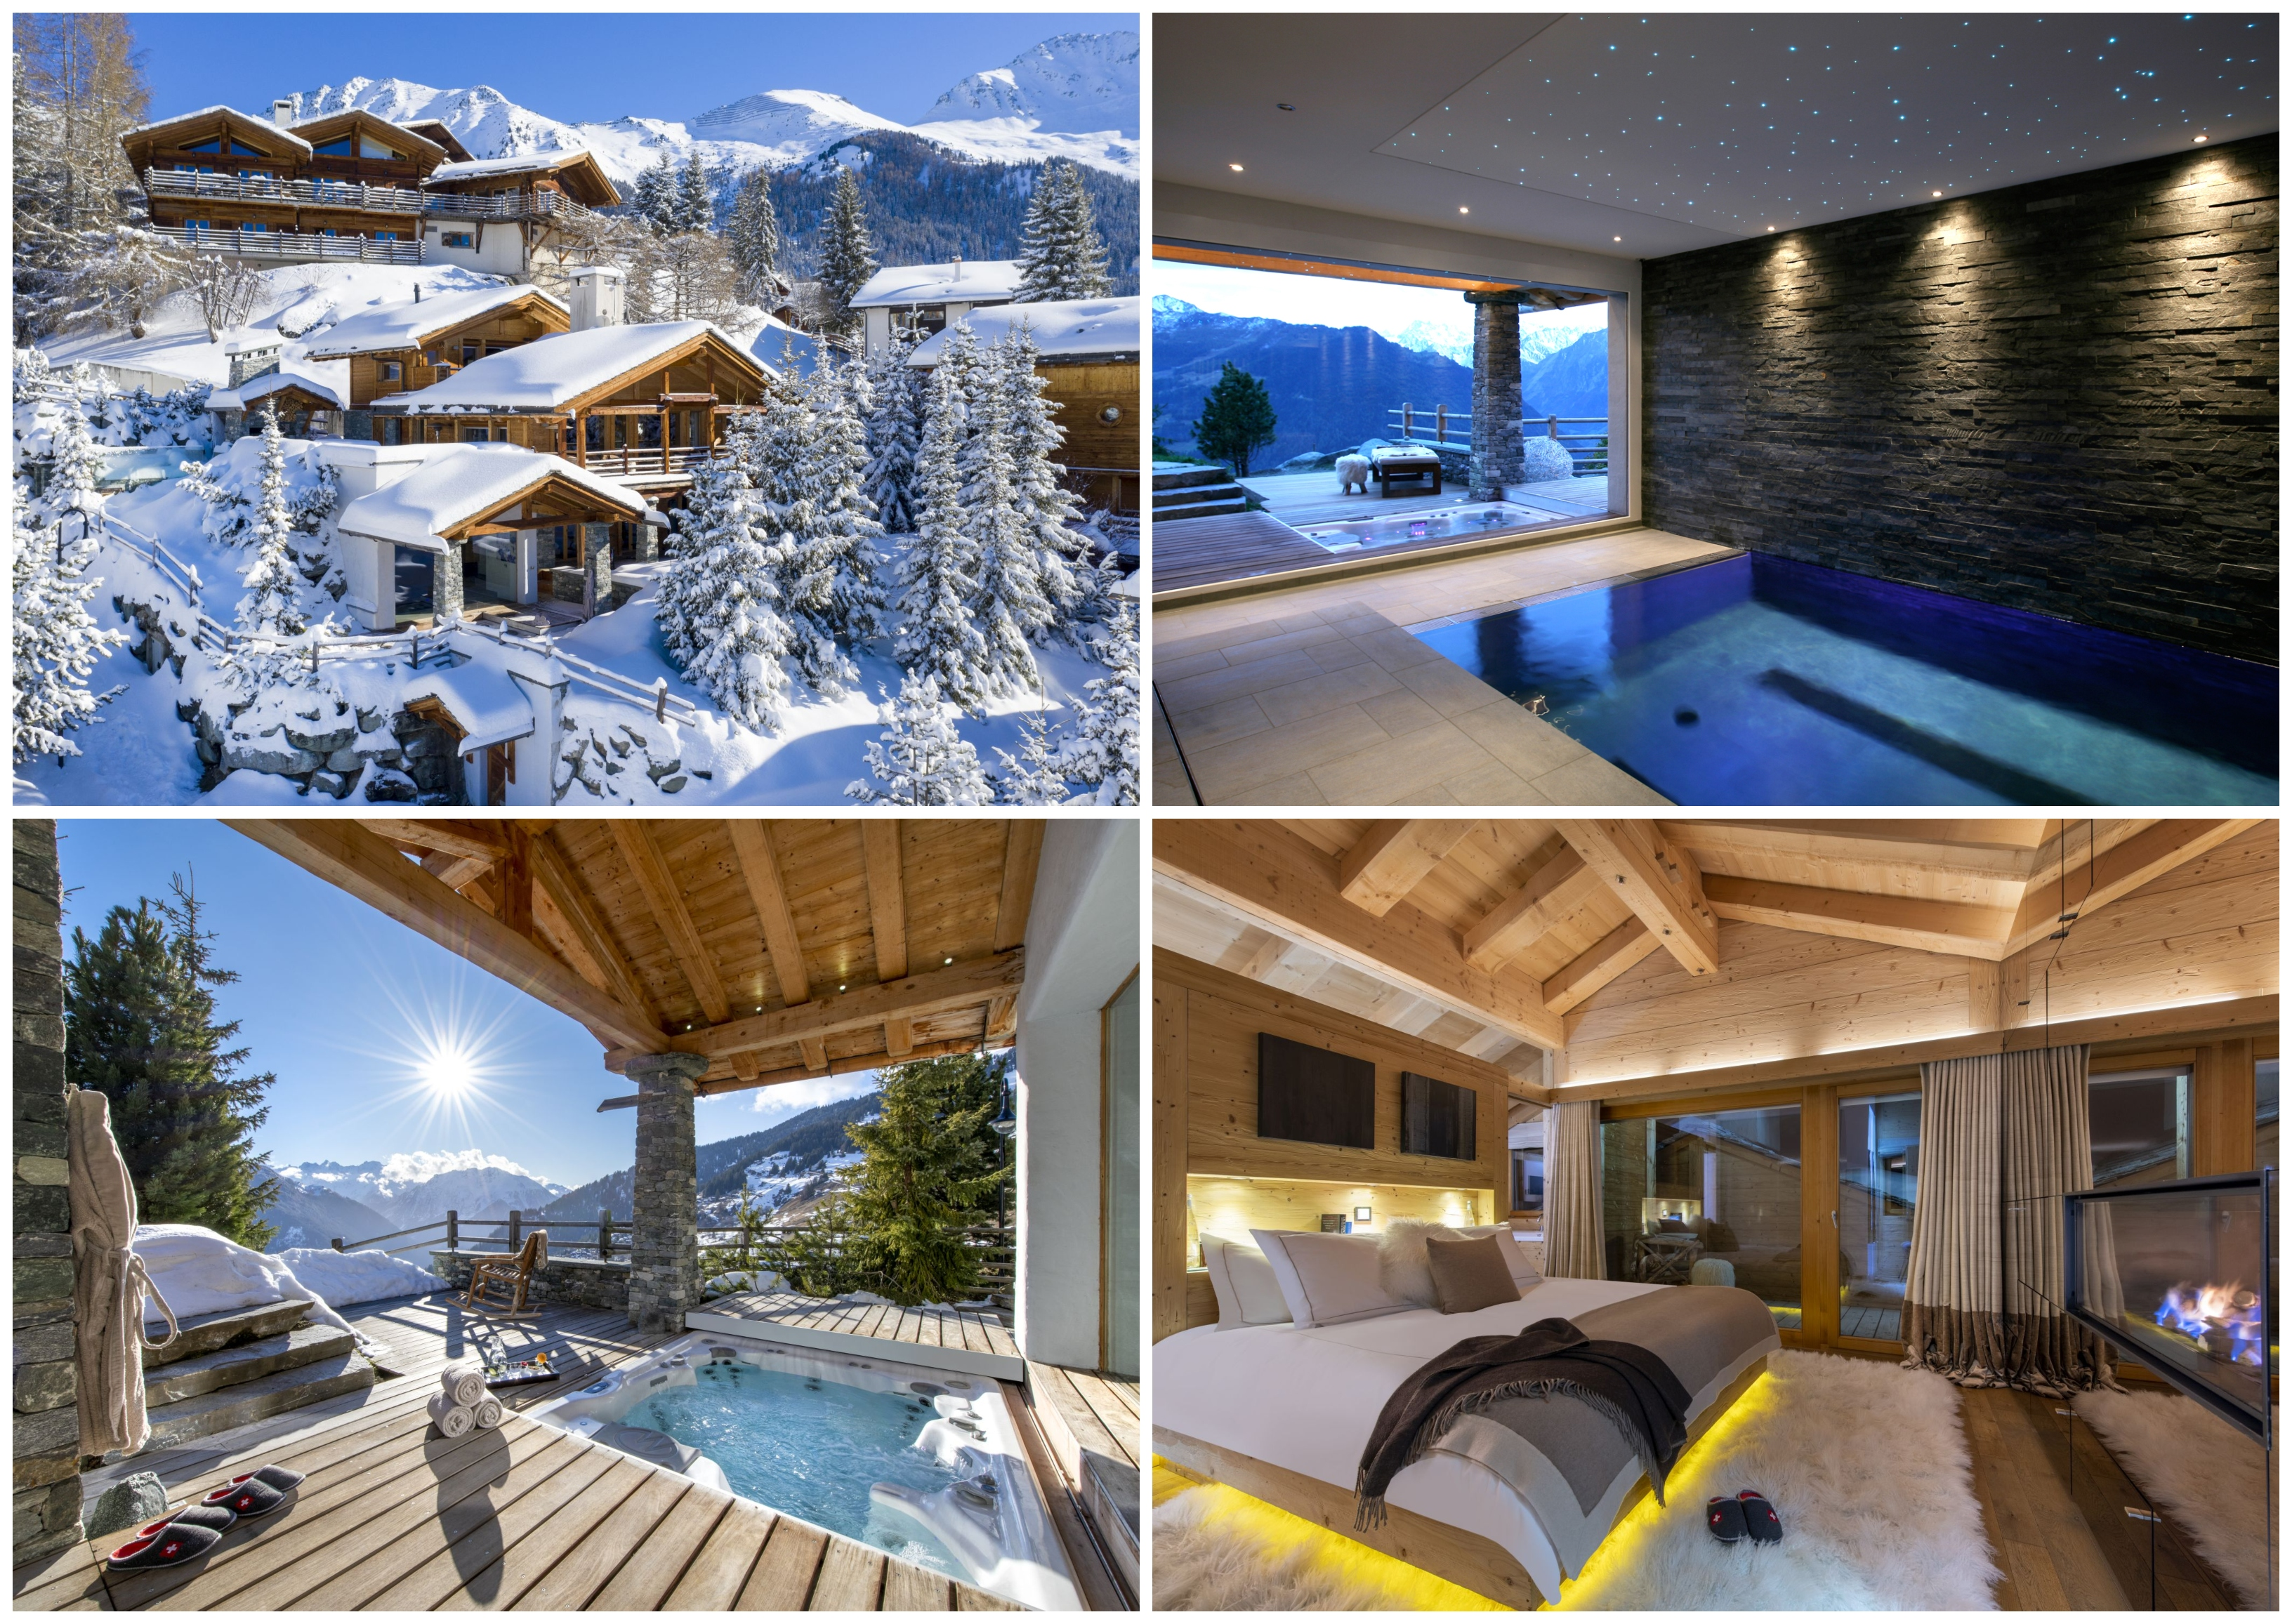 Ski chalets for two, romantic chalets Verbier, Verbier ski holiday, romantic ski holiday, romantic ski chalet Switzerland